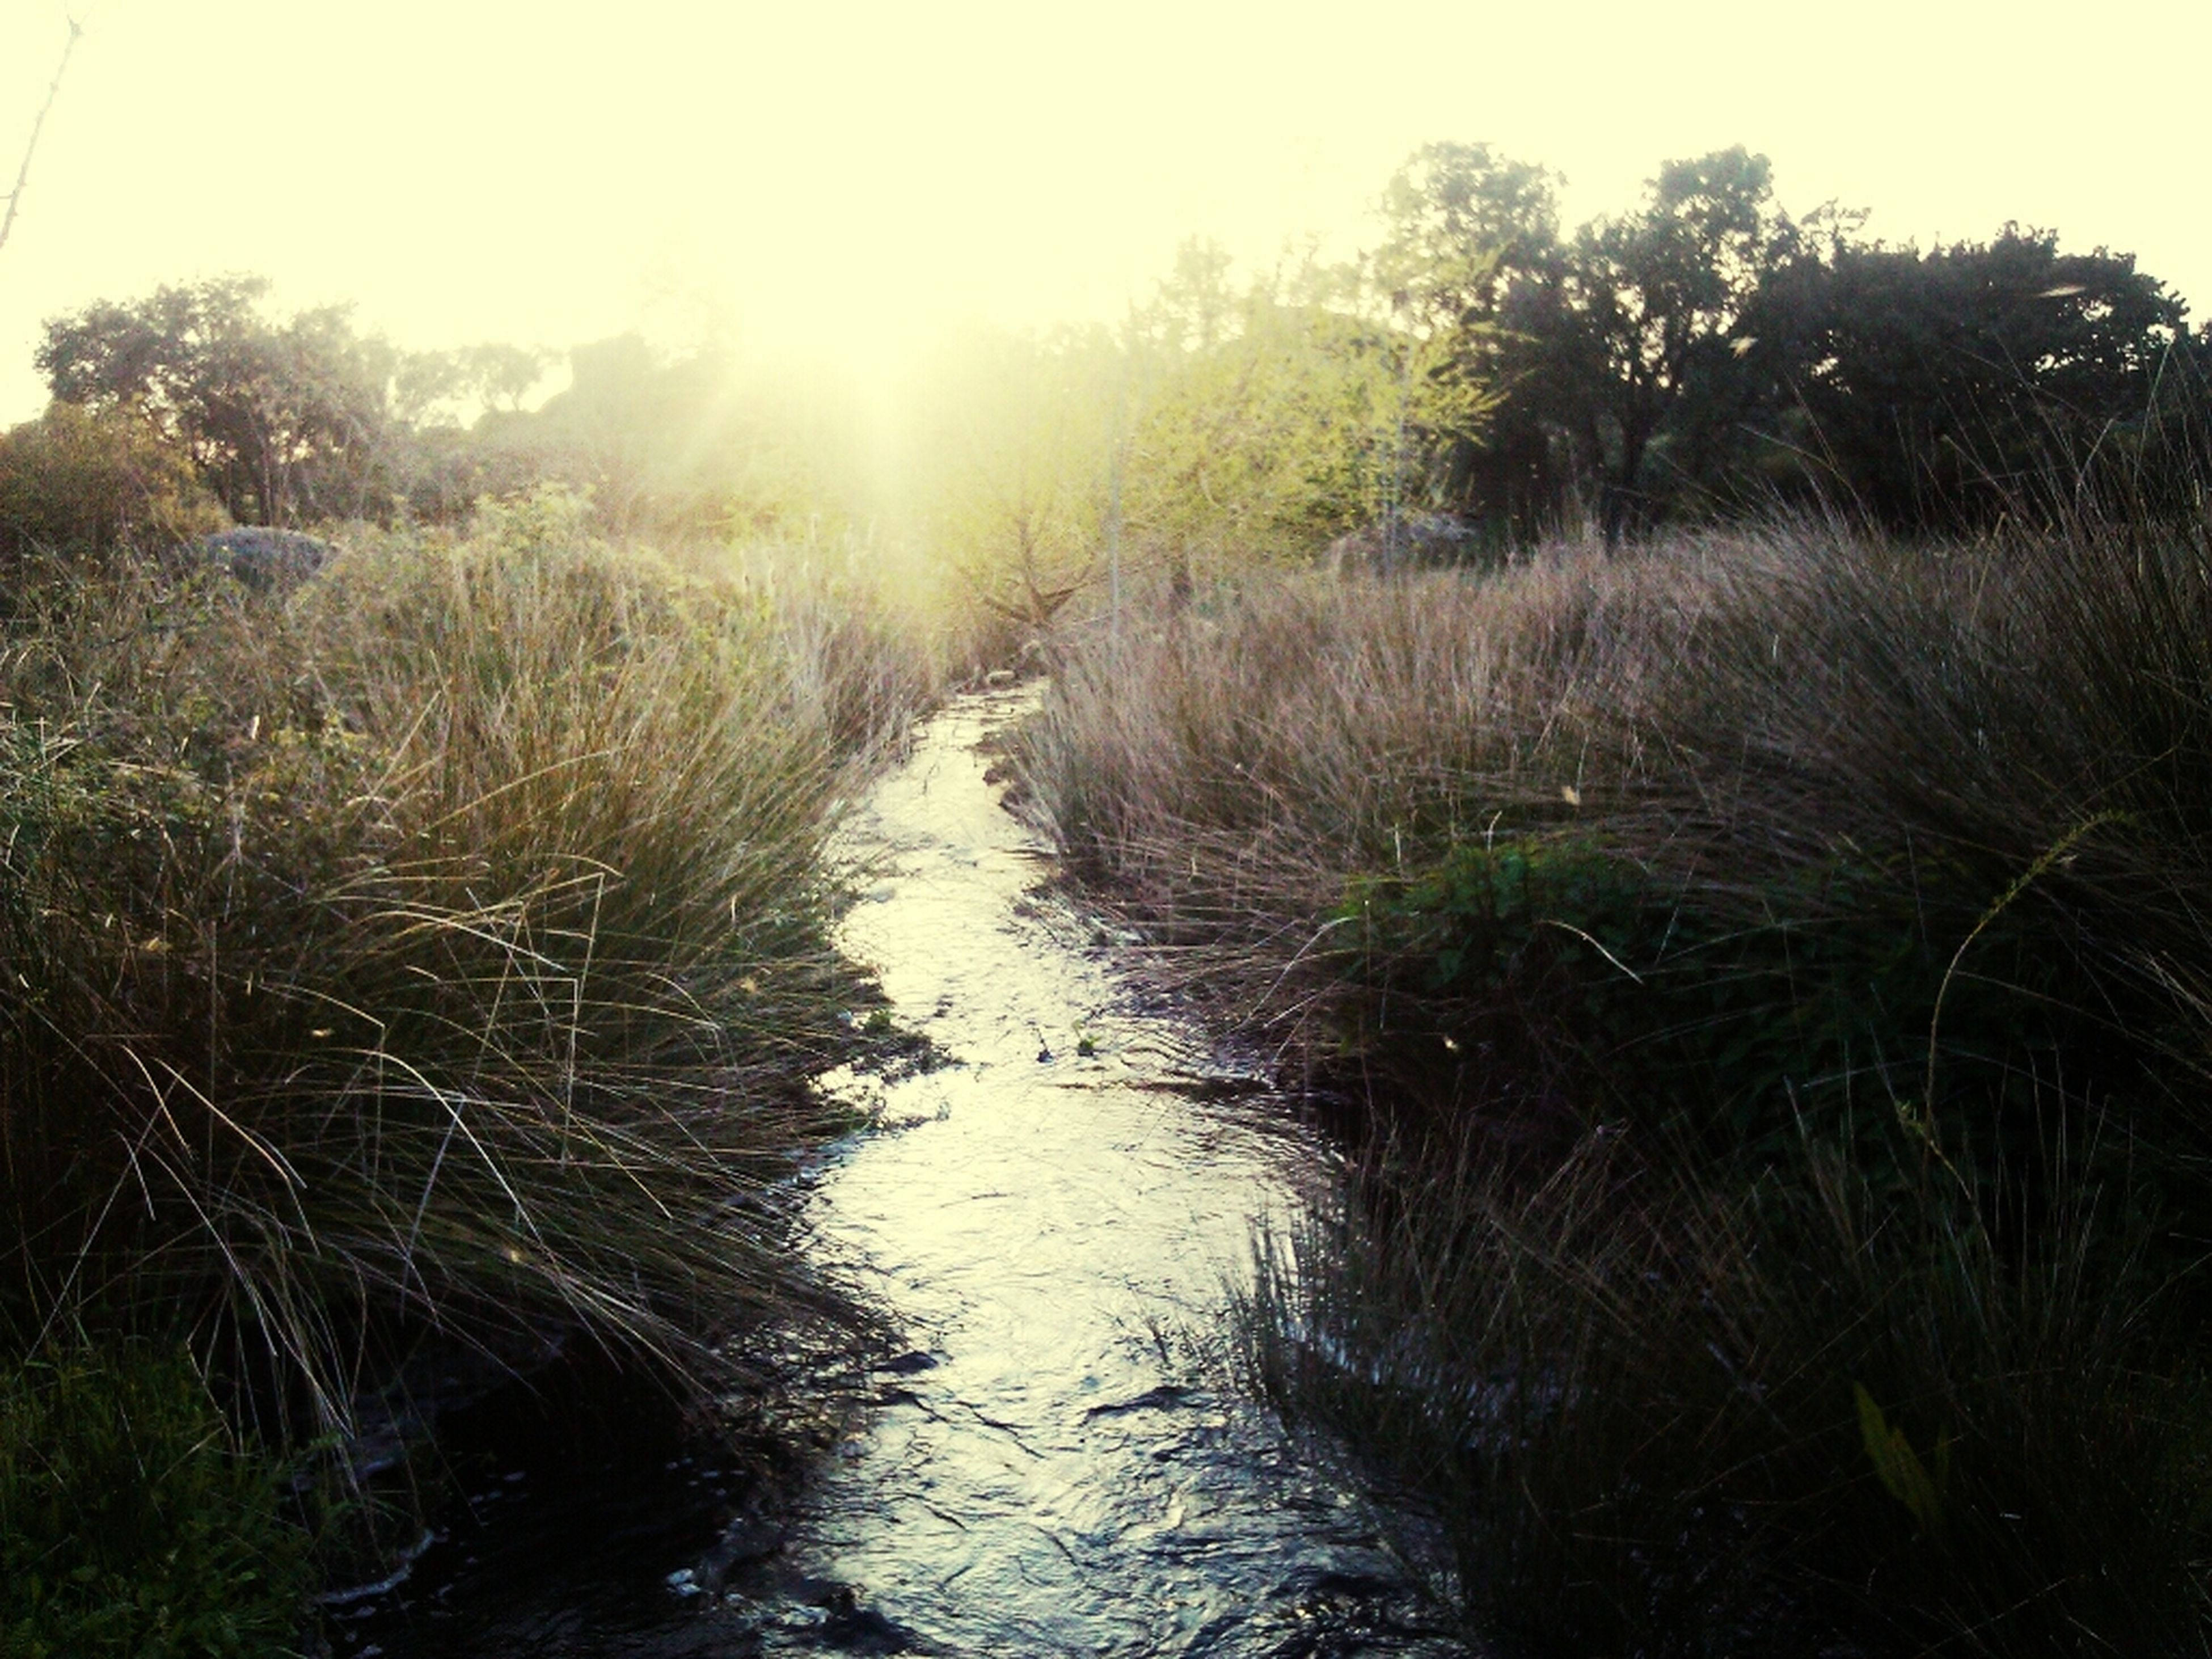 water, tranquility, tranquil scene, reflection, sun, tree, grass, nature, sunlight, growth, beauty in nature, scenics, plant, lake, sky, stream, sunbeam, river, outdoors, day